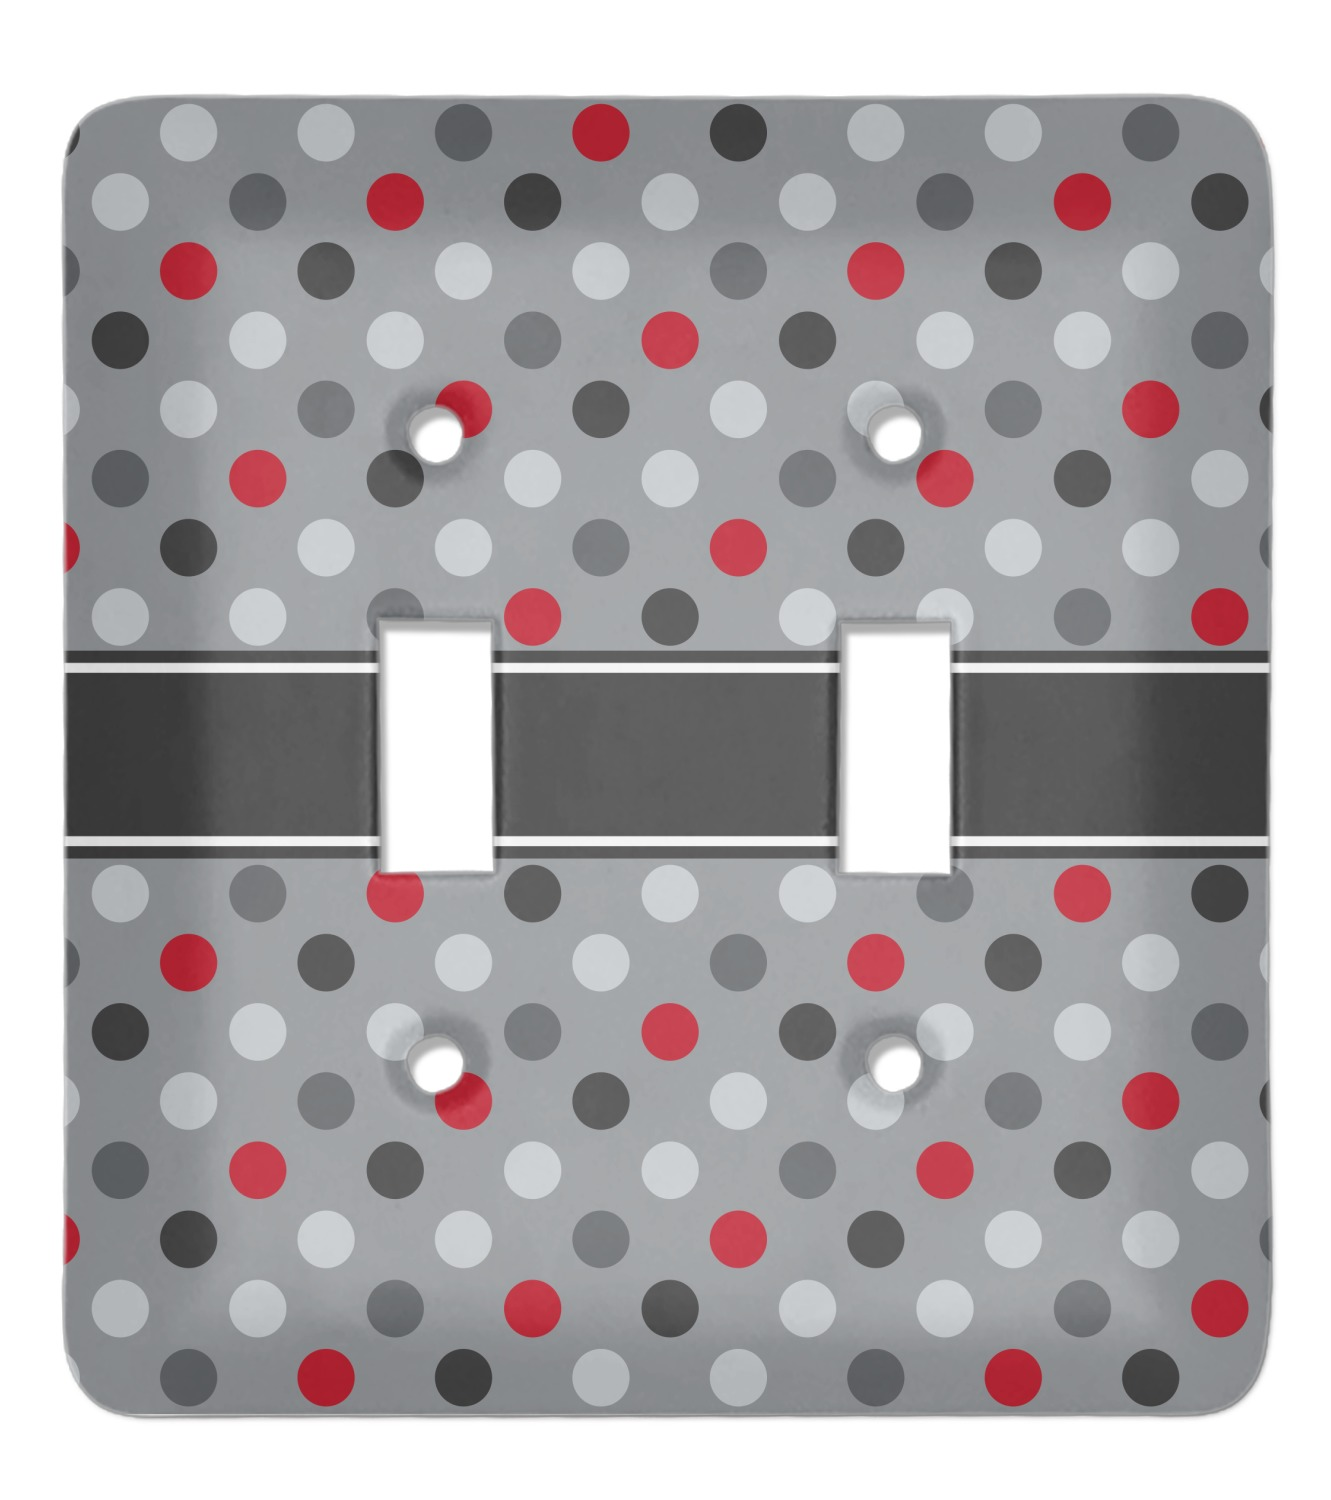 Red Gray Polka Dots Light Switch Cover 2 Toggle Plate